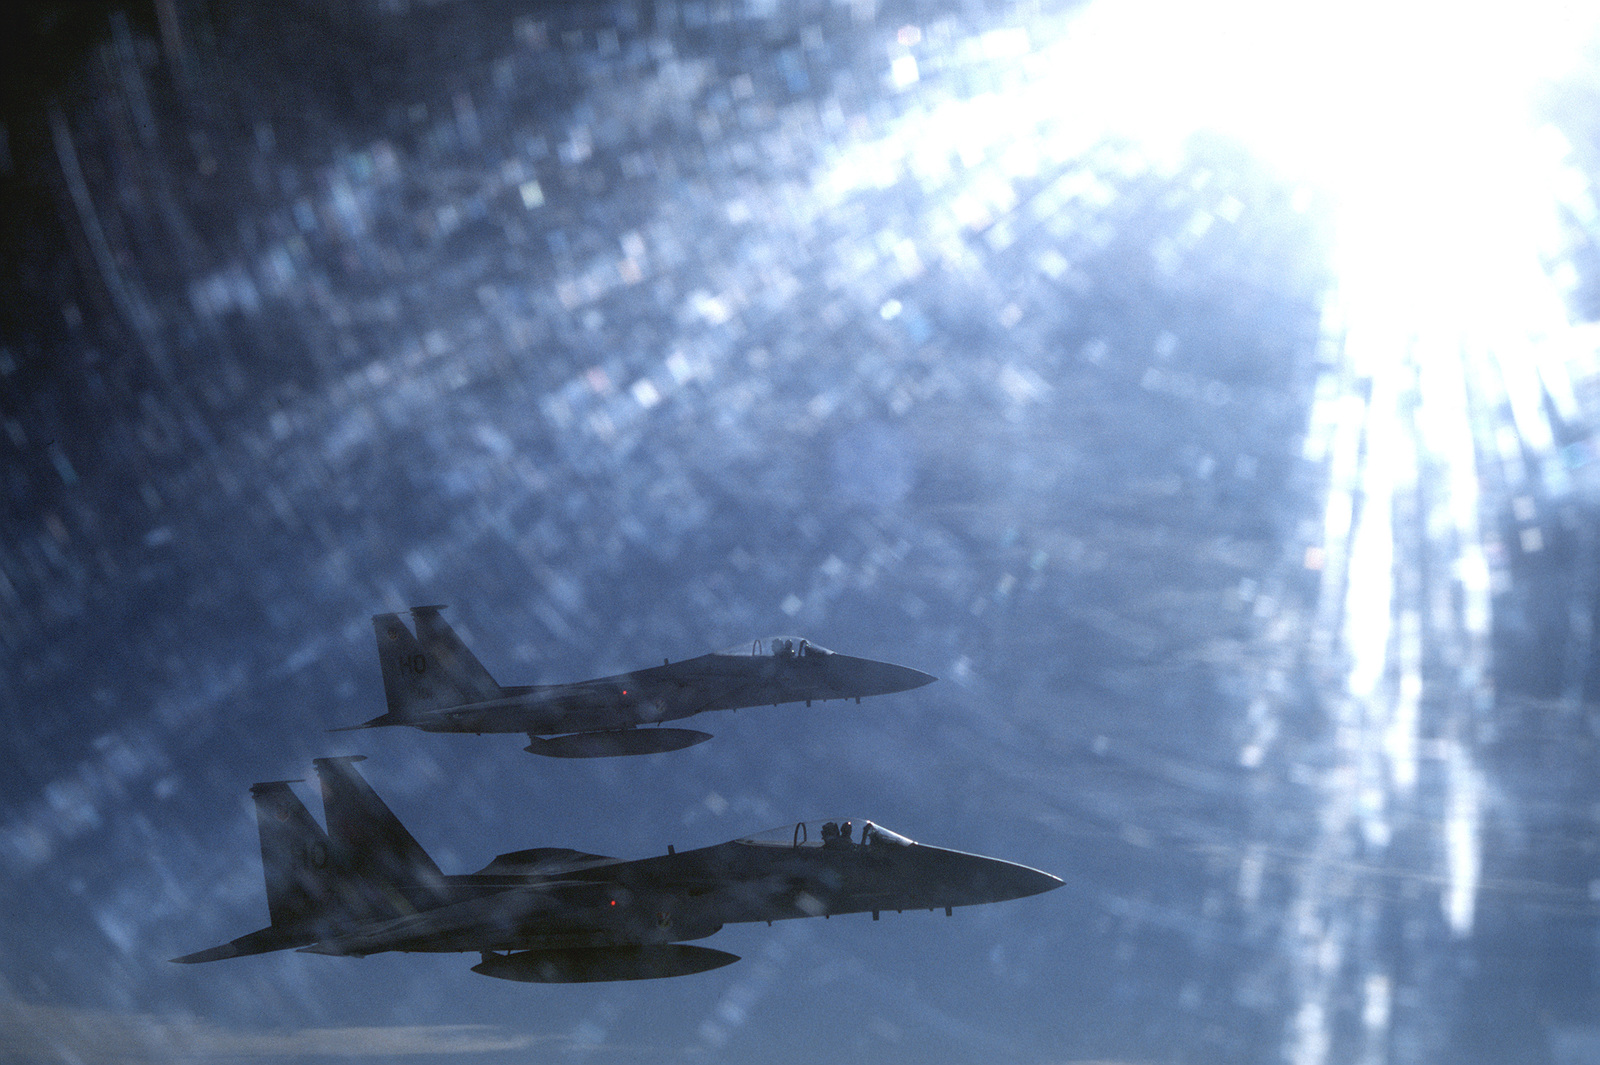 Back lighted air to air view of two F-15 Eagles assigned to the 49th Tactical Fighter Wing, Holloman Air Force Base, New Mexico. Aircraft in foreground is assigned to the 7th Tactical Fighter Squadron. Exact Date Shot Unknown